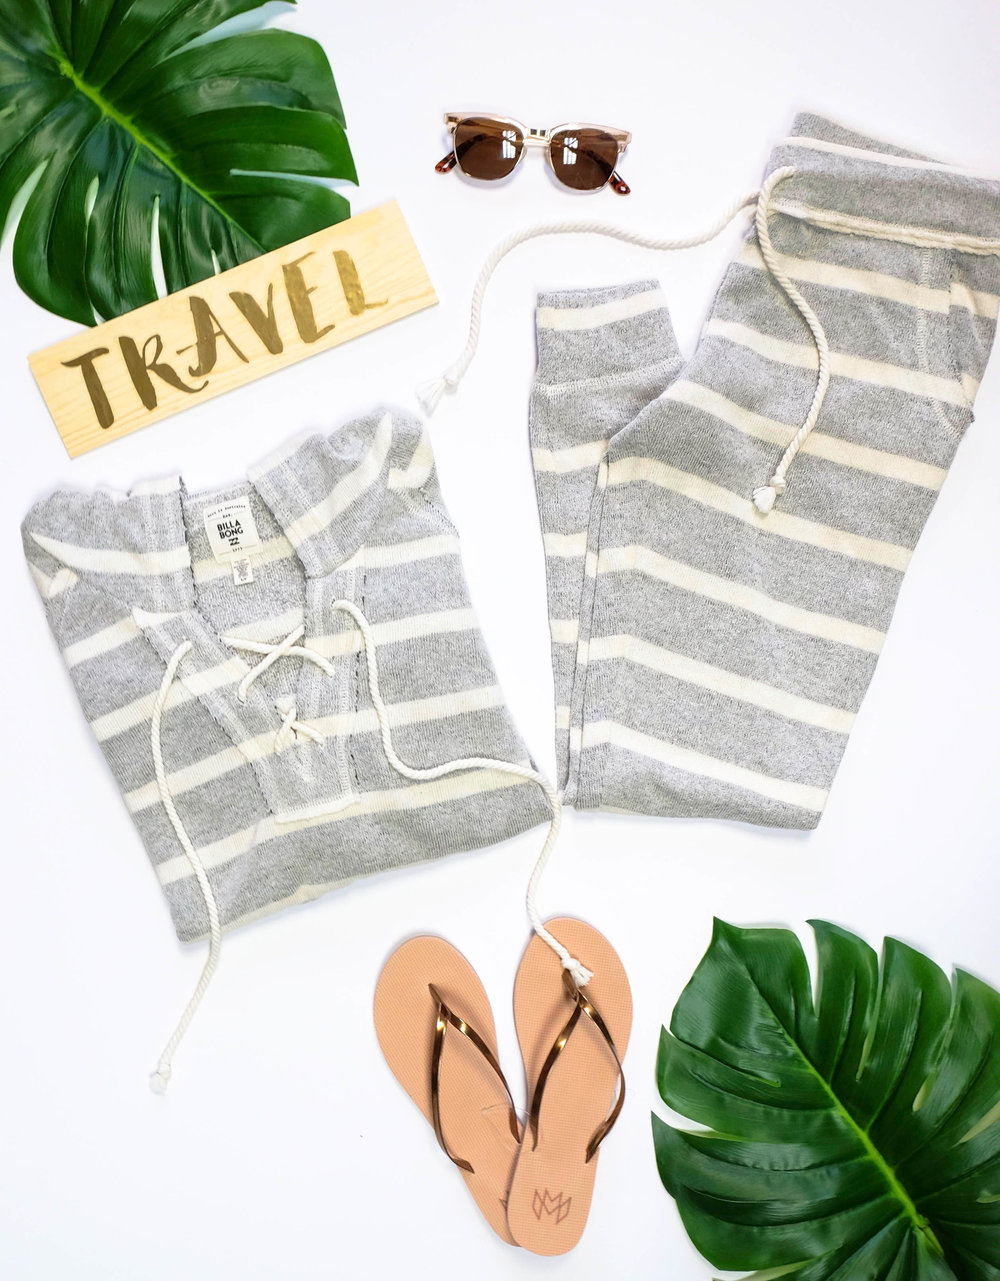 "For our ladies, a comfy day-of-travel outfit is necessary without looking like you just rolled out of bed for your 5 AM flight (even if you did!). Pairing your favorite sweatshirt and sweatpants doesn't always have to be your ""day off look"", especially with this cute Billabong set, an effortless way to look presentable. Now for shoes… I would personally wear some easy sandals to slip on and off because who wants to spend any more extra time in airport security?! Plus, I like to take my kicks off on the plane and can save myself the embarrassment of stinky shoes. (Quick Tip: Keep a pair of Stance socks in your carry on!) And don't worry, we added some Toms sunglasses to hide those bags under your eyes. ;)    Pictured: Billabong Sweatshirt Billabong Sweats Toms Sunglasses Malvados Flip-Flips     Now for the part I know everyone has been dreading since Thanksgiving. Swimsuit Season. Trust me, the last thing I want to do is put a swimsuit on my terrifyingly white body too. But we have so many cute suits in store that its hard to not want to buy them! My current swimsuit obsession is this fun, printed Maaji two-piece. Also, they're swimwear is reversible so it's basically getting two swimsuits in one! Which means you won't have to pack as much and your suitcase will have more room for shoes :) Other than a swimsuit being a beach/pool day essential having a cute towel will make getting that sun burn a little cuter. You cant't go wrong with this Volcom 'Hypnotize' Round Towel, its even big enough for two (AKA another reason to pack more shoes)! Last but not least, don't forget to support your favorite local boutique and pick up a cute and functional Vanilla Mizu water bottle to keep your choice of beverage cold all day! Post a pic and tag us on Instagram of where you and your Vanilla bottle are vacationing to this Spring!"